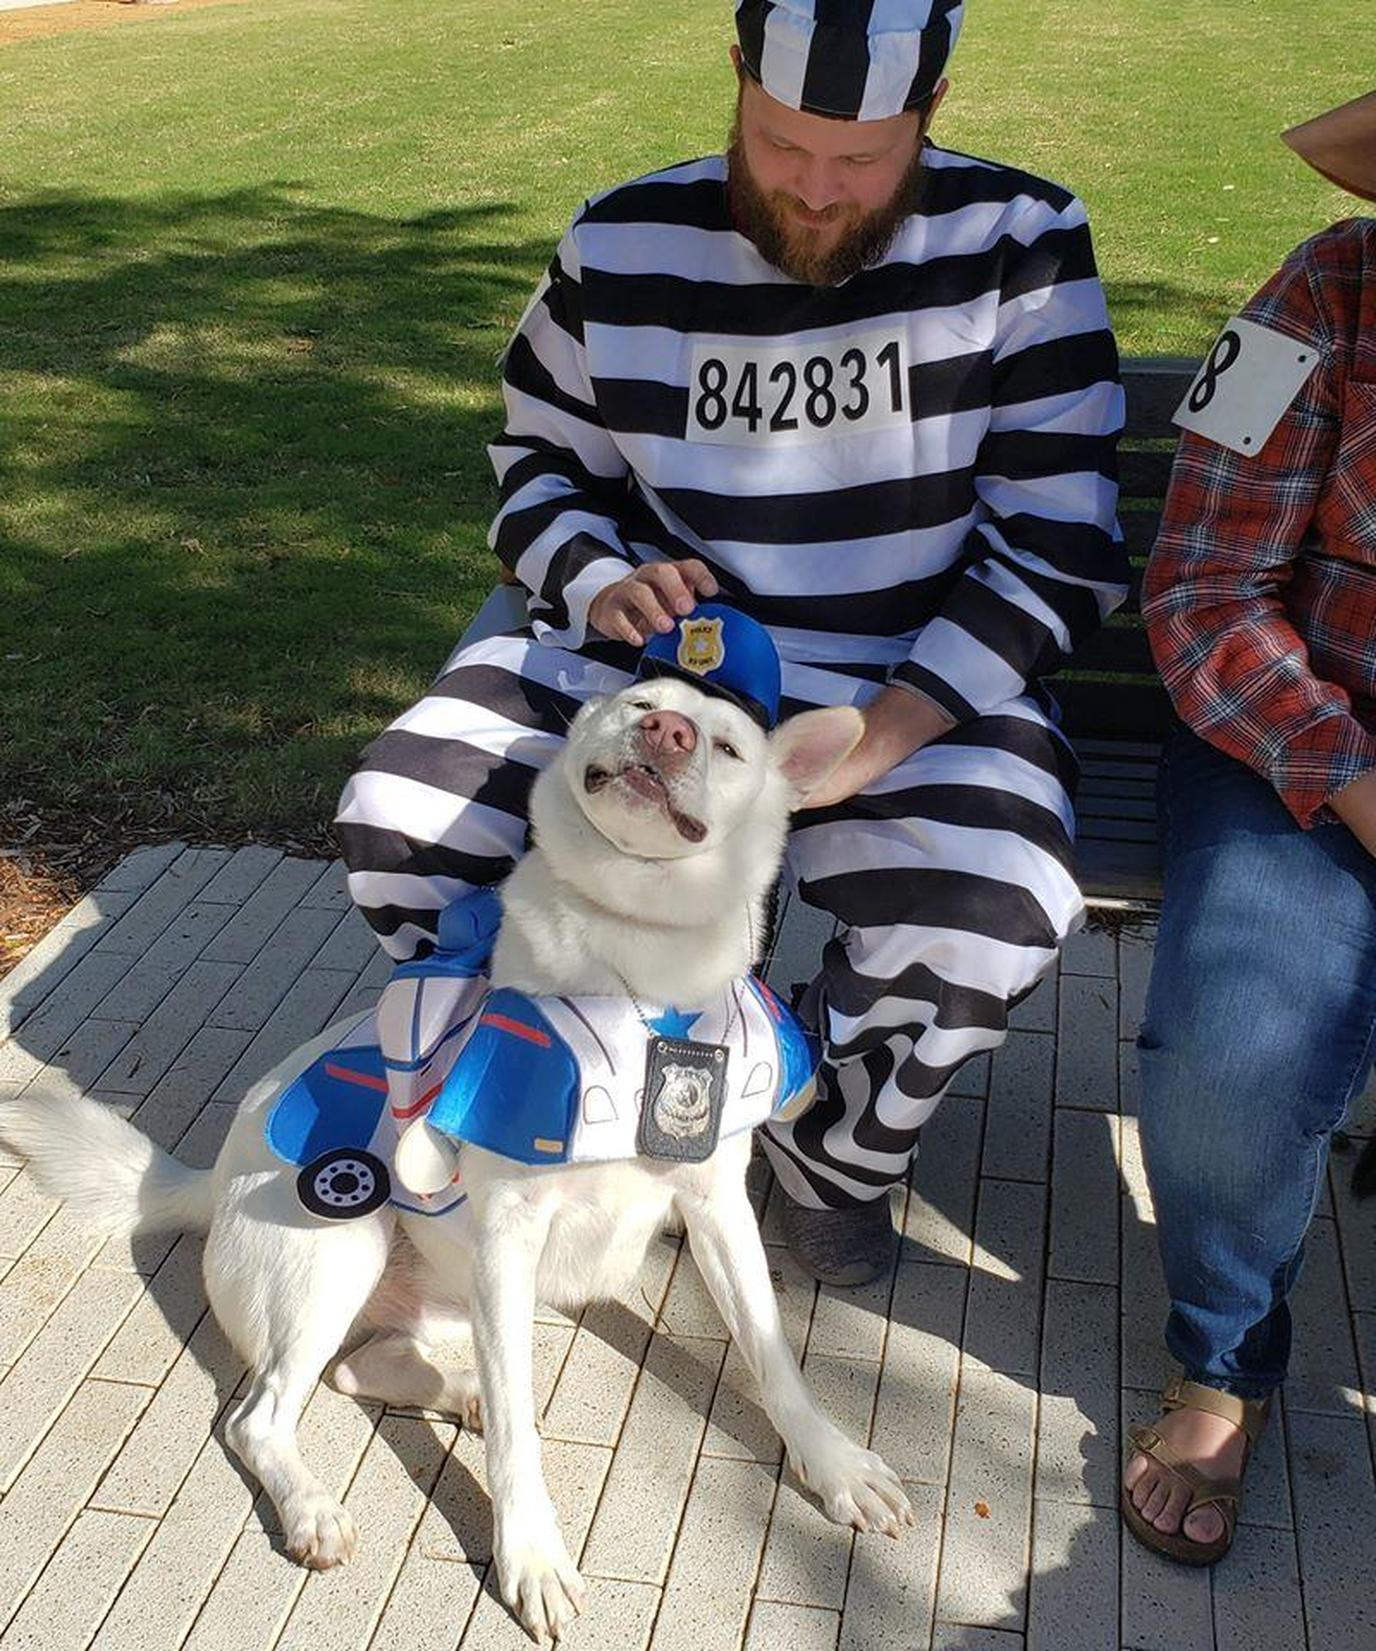 A Man Dresses As a Prisoner With a Dog Dressed As A Policeman.